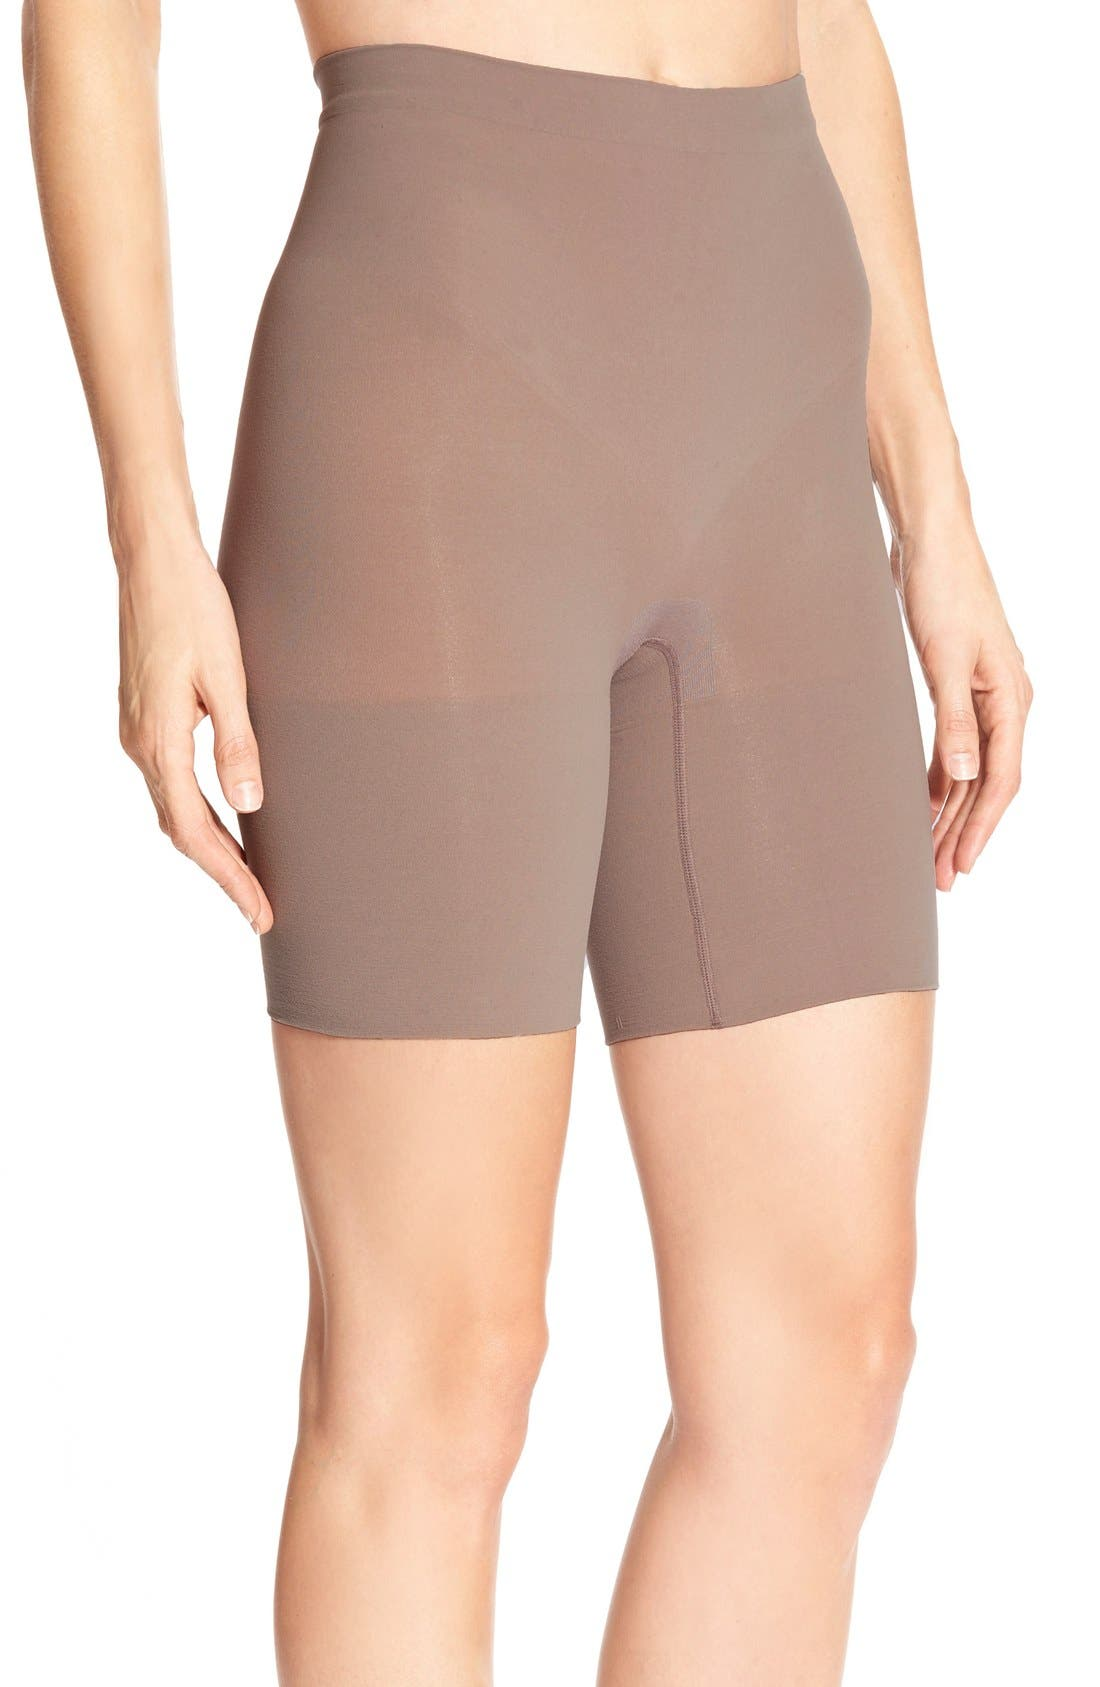 Power Short Mid Thigh Shaper,                             Main thumbnail 1, color,                             Taupe Tone